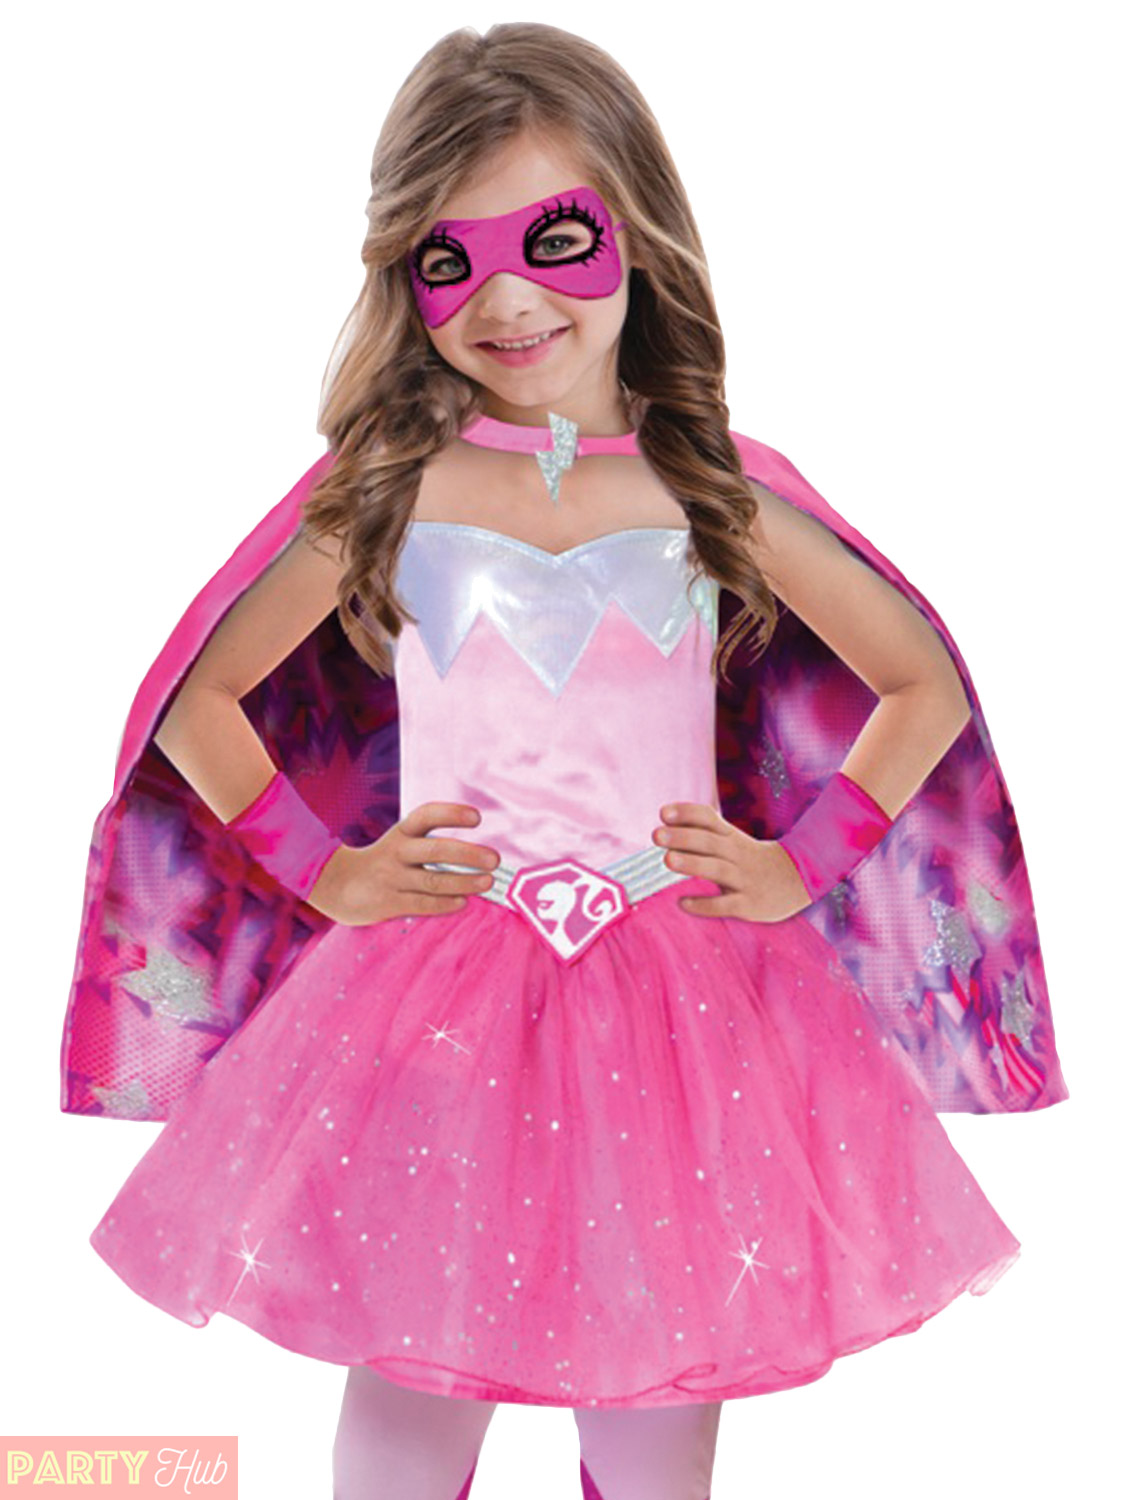 Barbie Princess Costumes & Princess Costumes For Girls